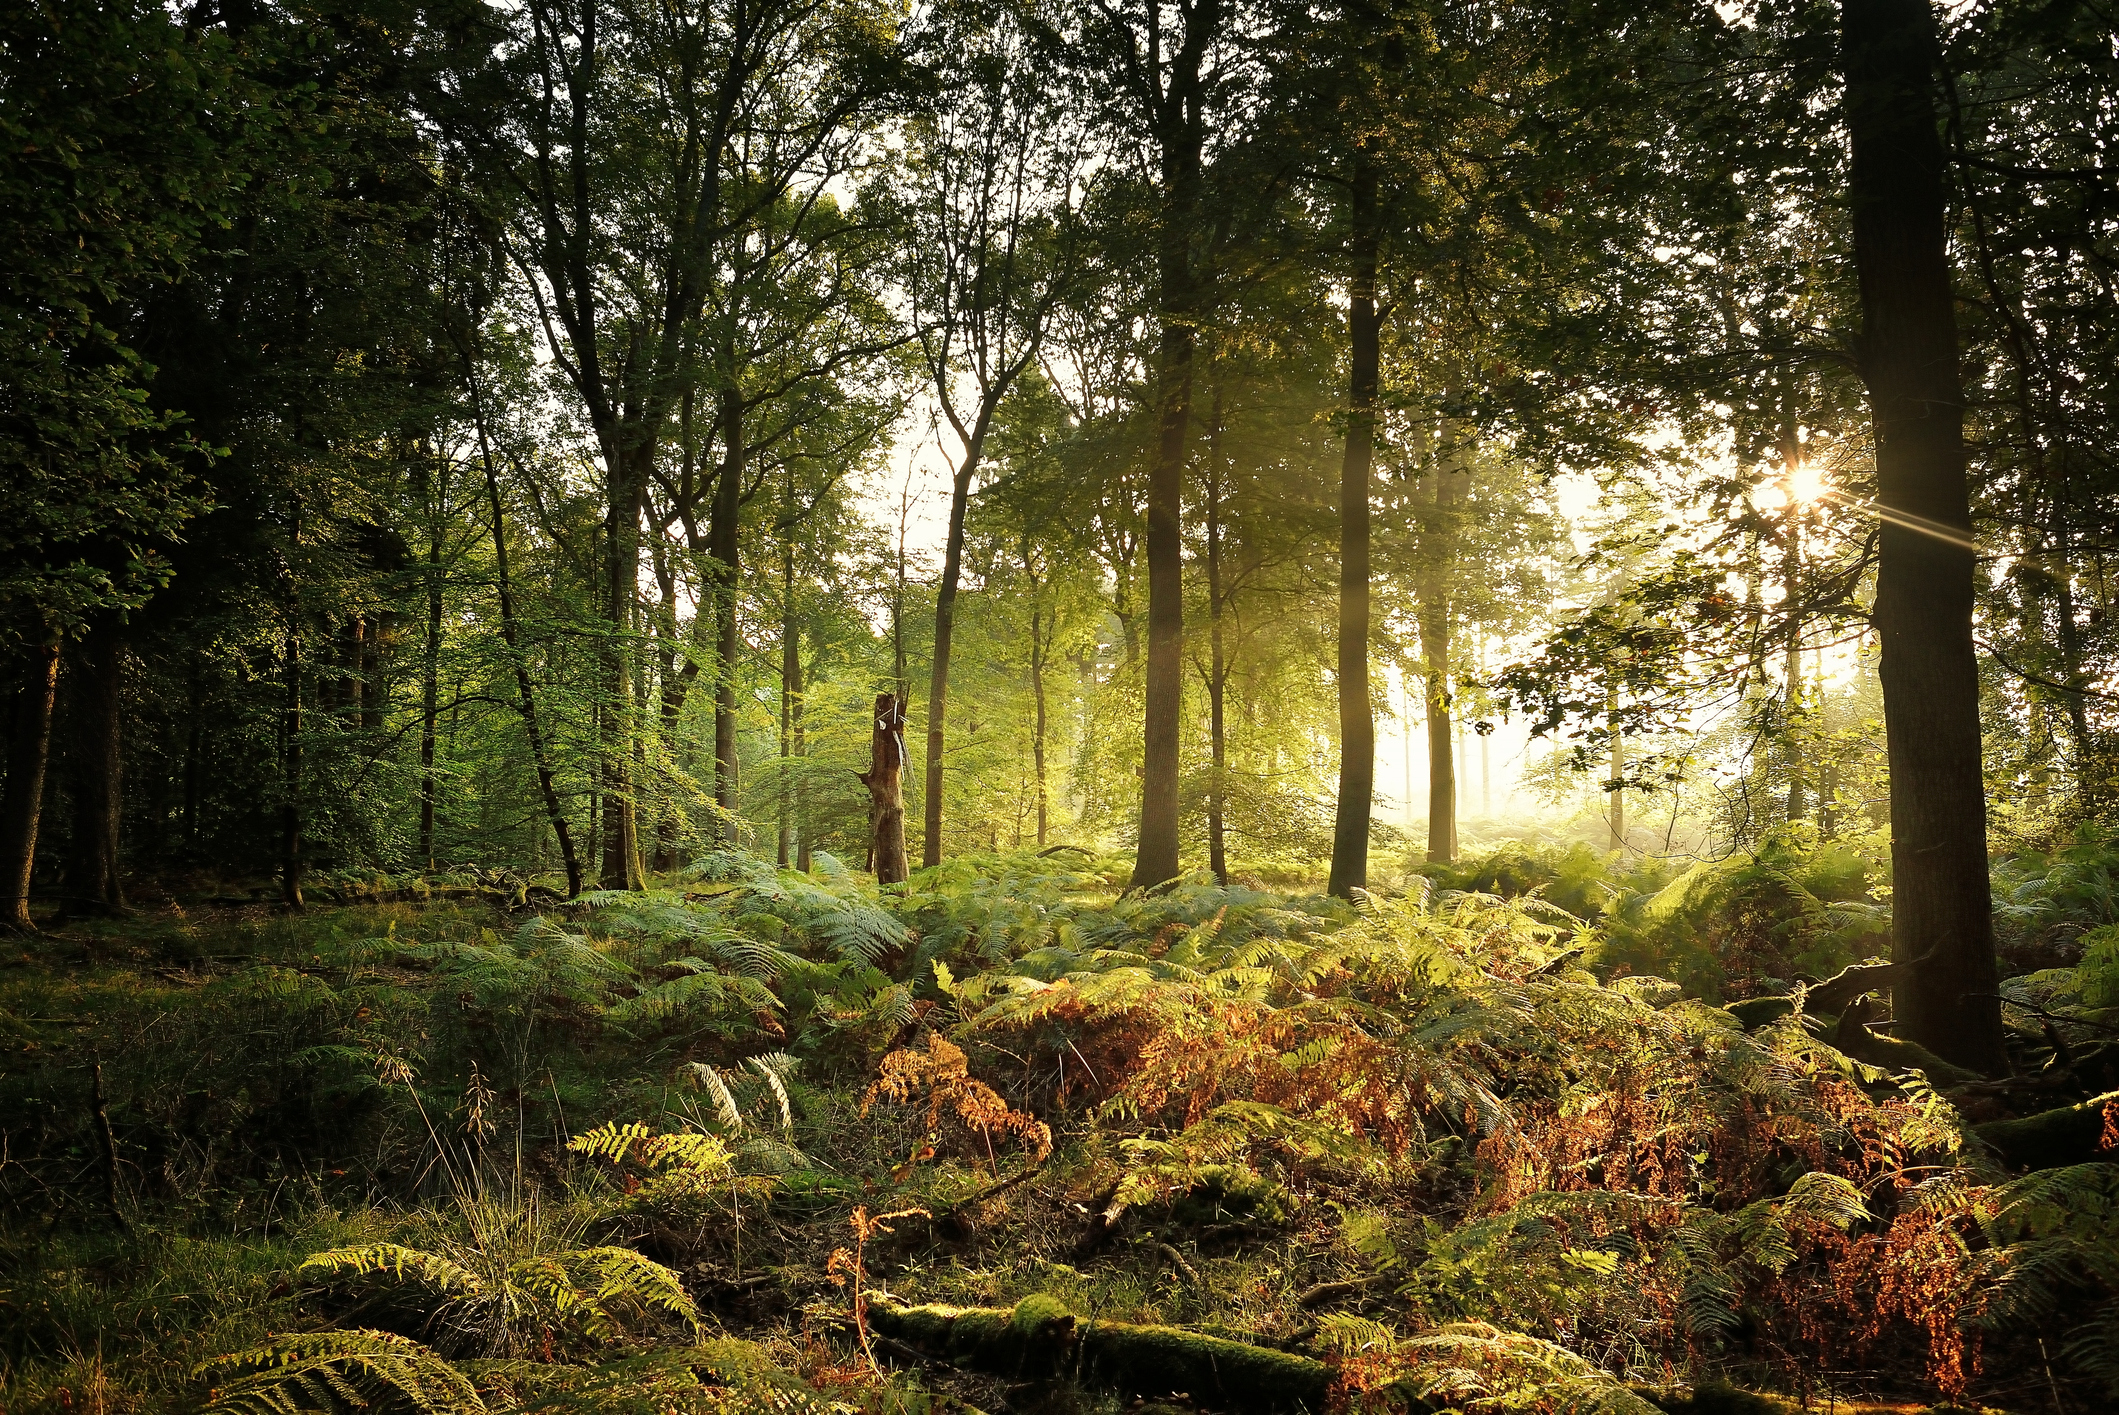 These beautiful woodland walks are the perfect way to spend an autumn weekend